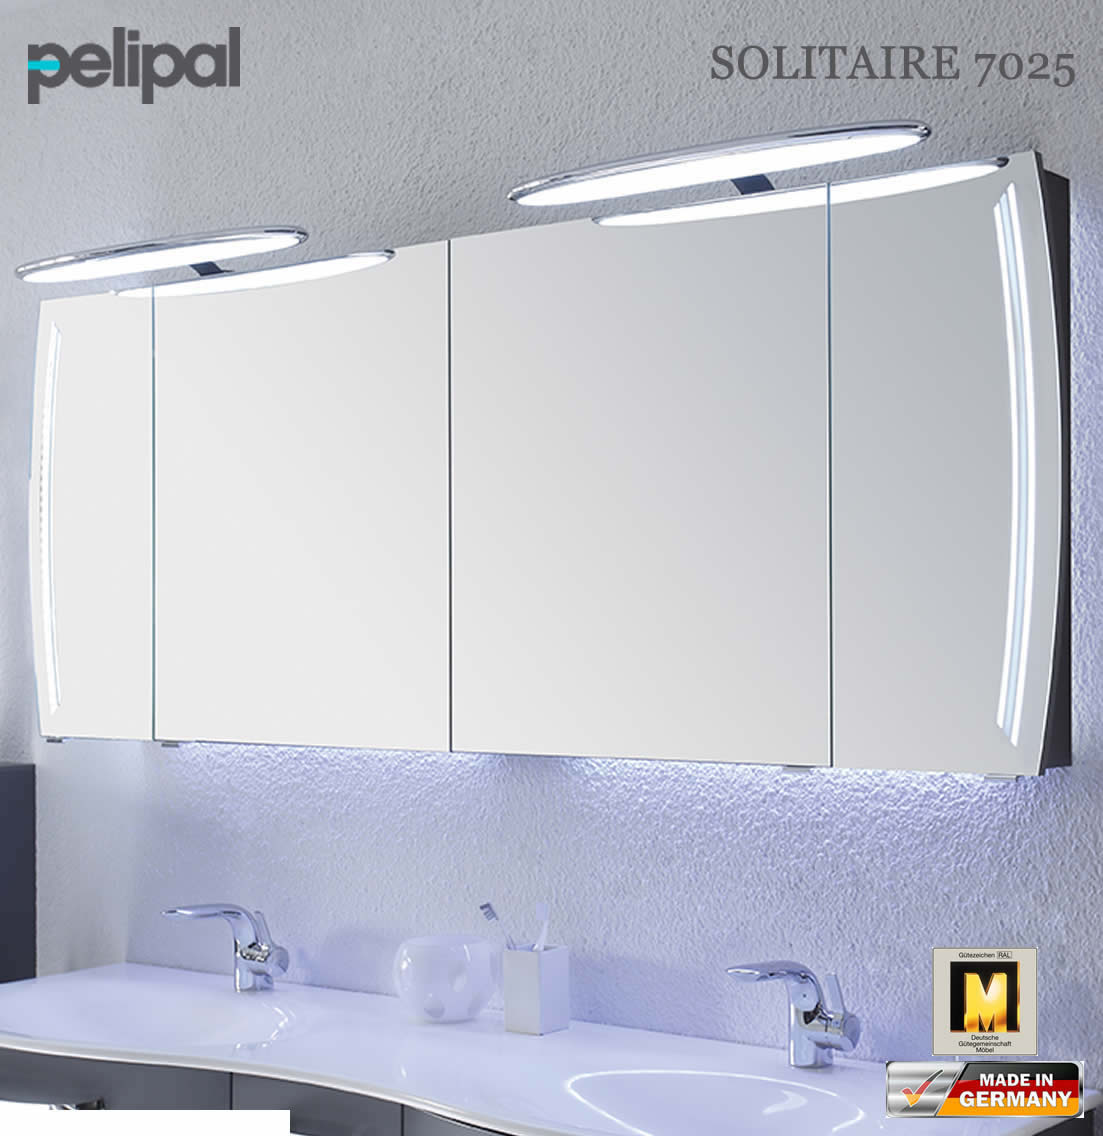 pelipal solitaire 7025 led spiegelschrank 180 cm 7025 sps 12 impuls home. Black Bedroom Furniture Sets. Home Design Ideas